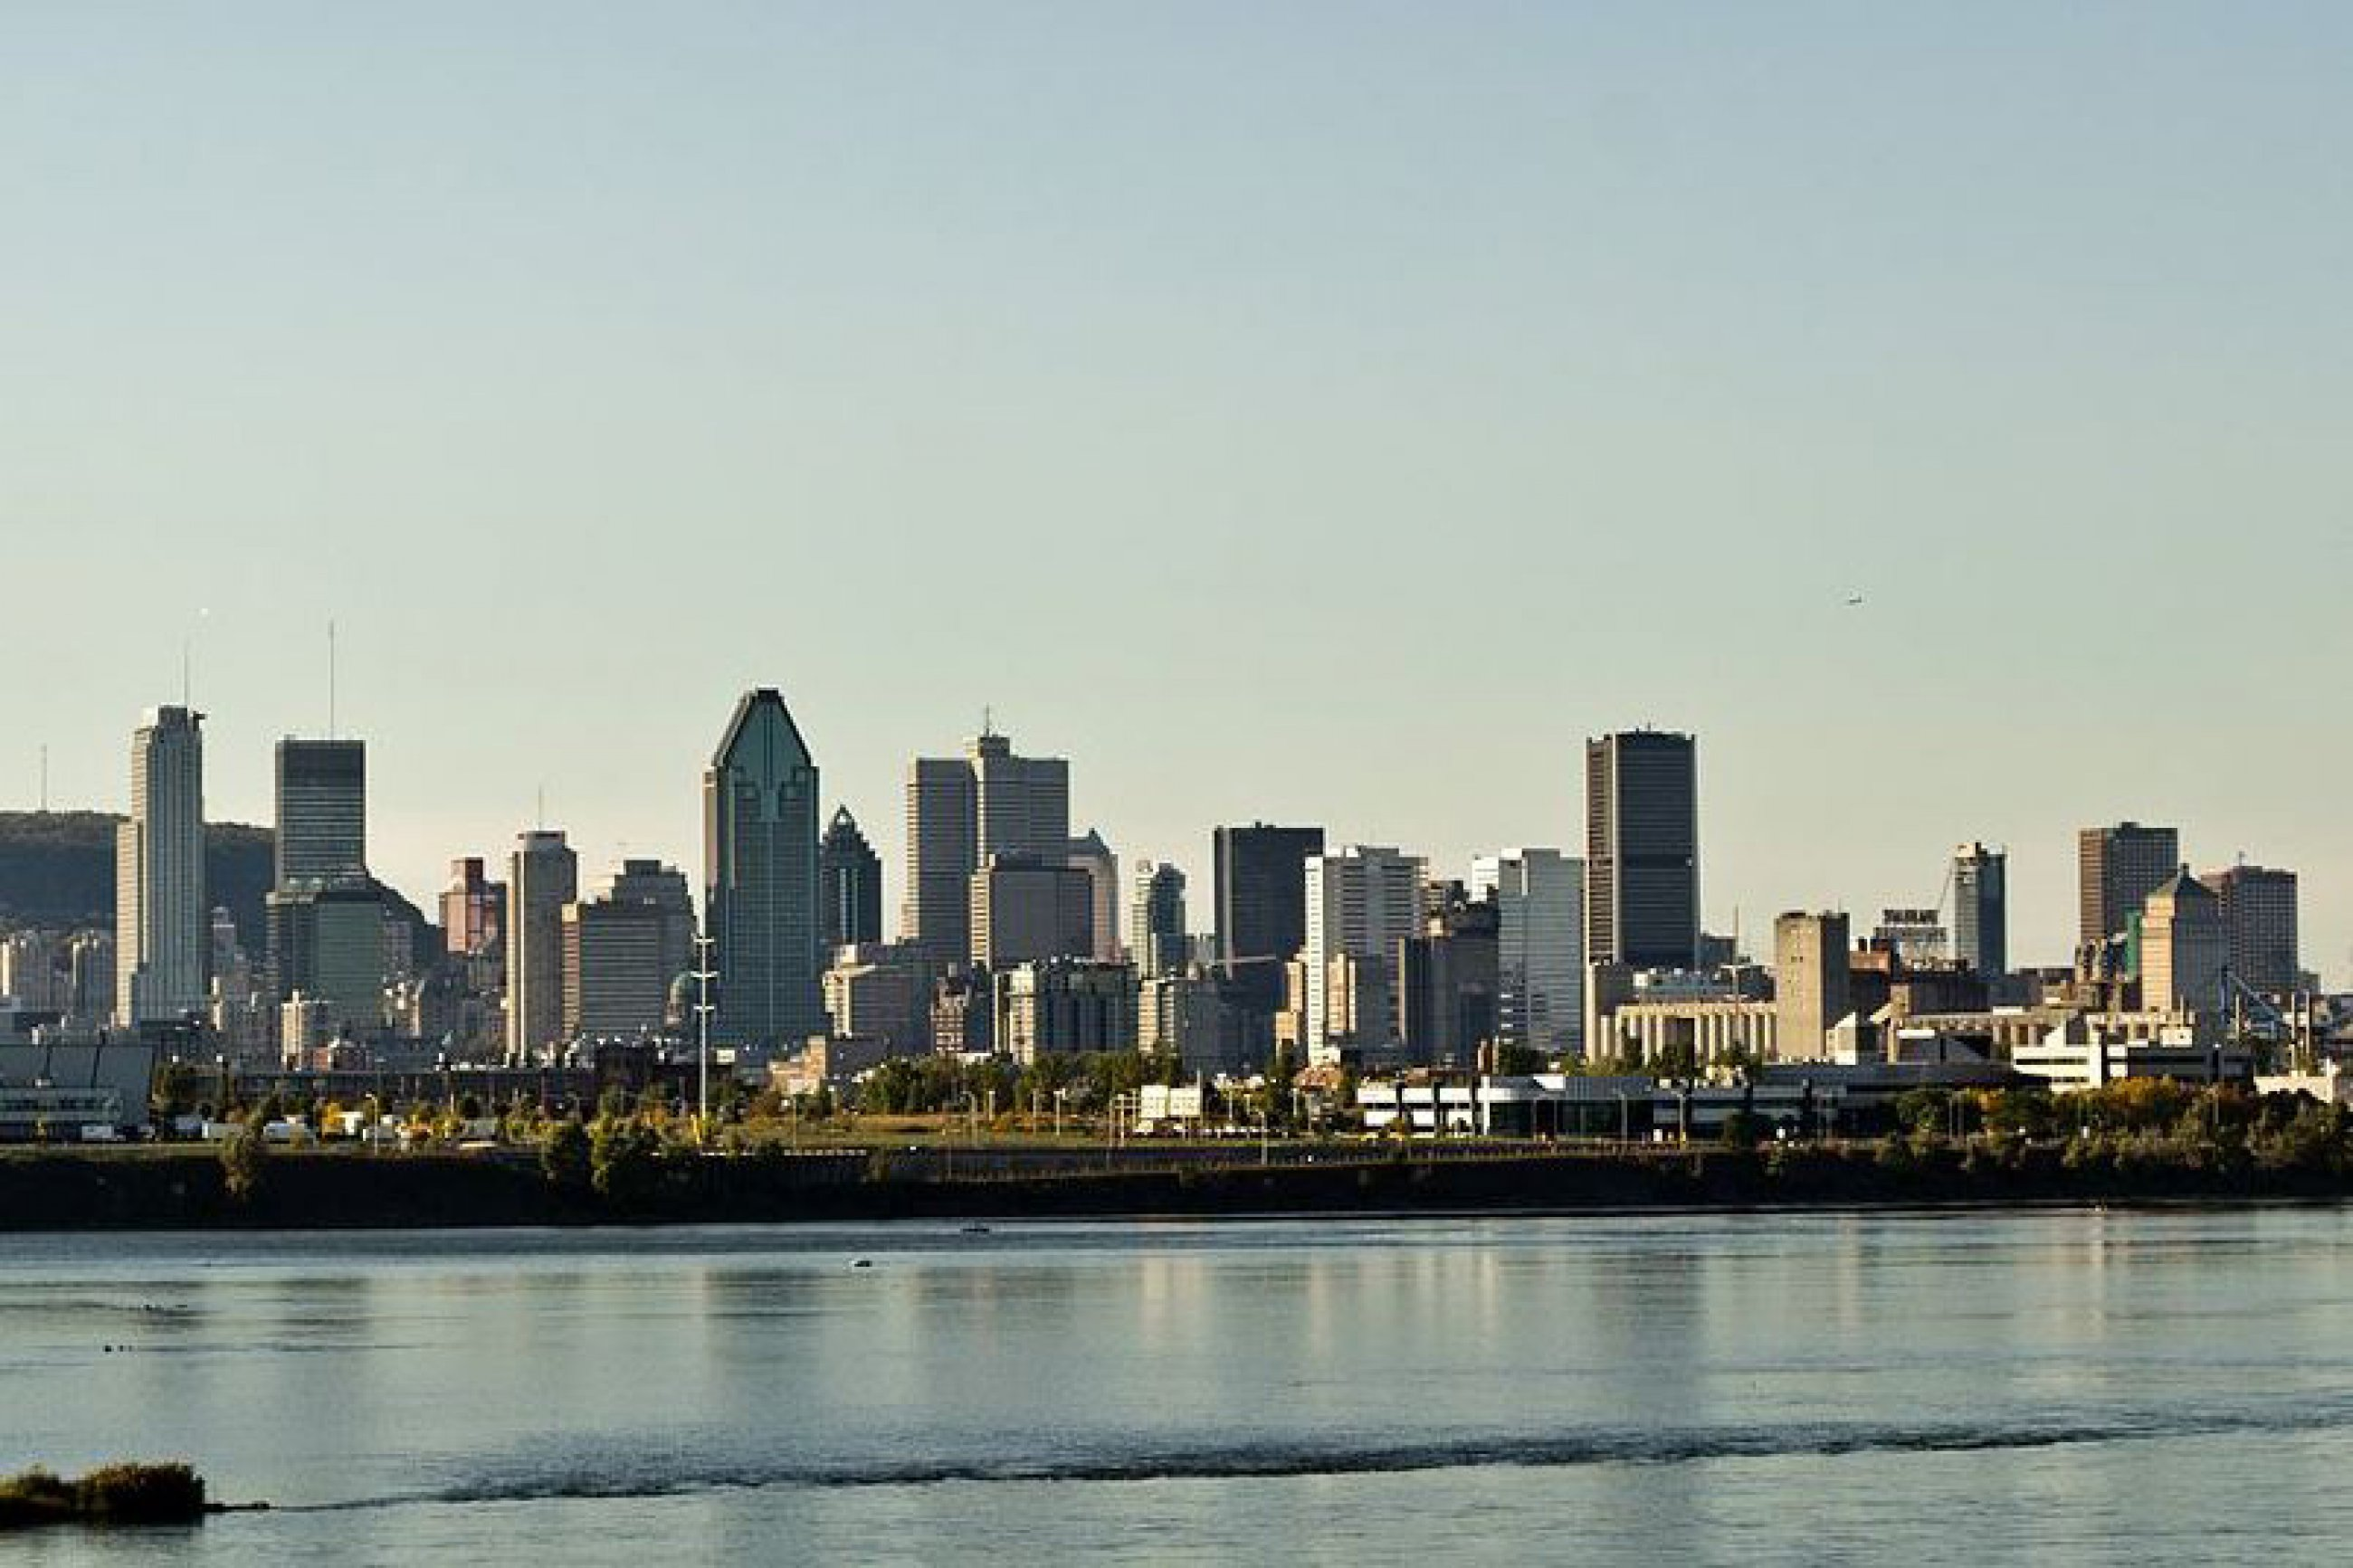 https://bubo.sk/uploads/galleries/7322/montreal-skyline-september-2013.jpg